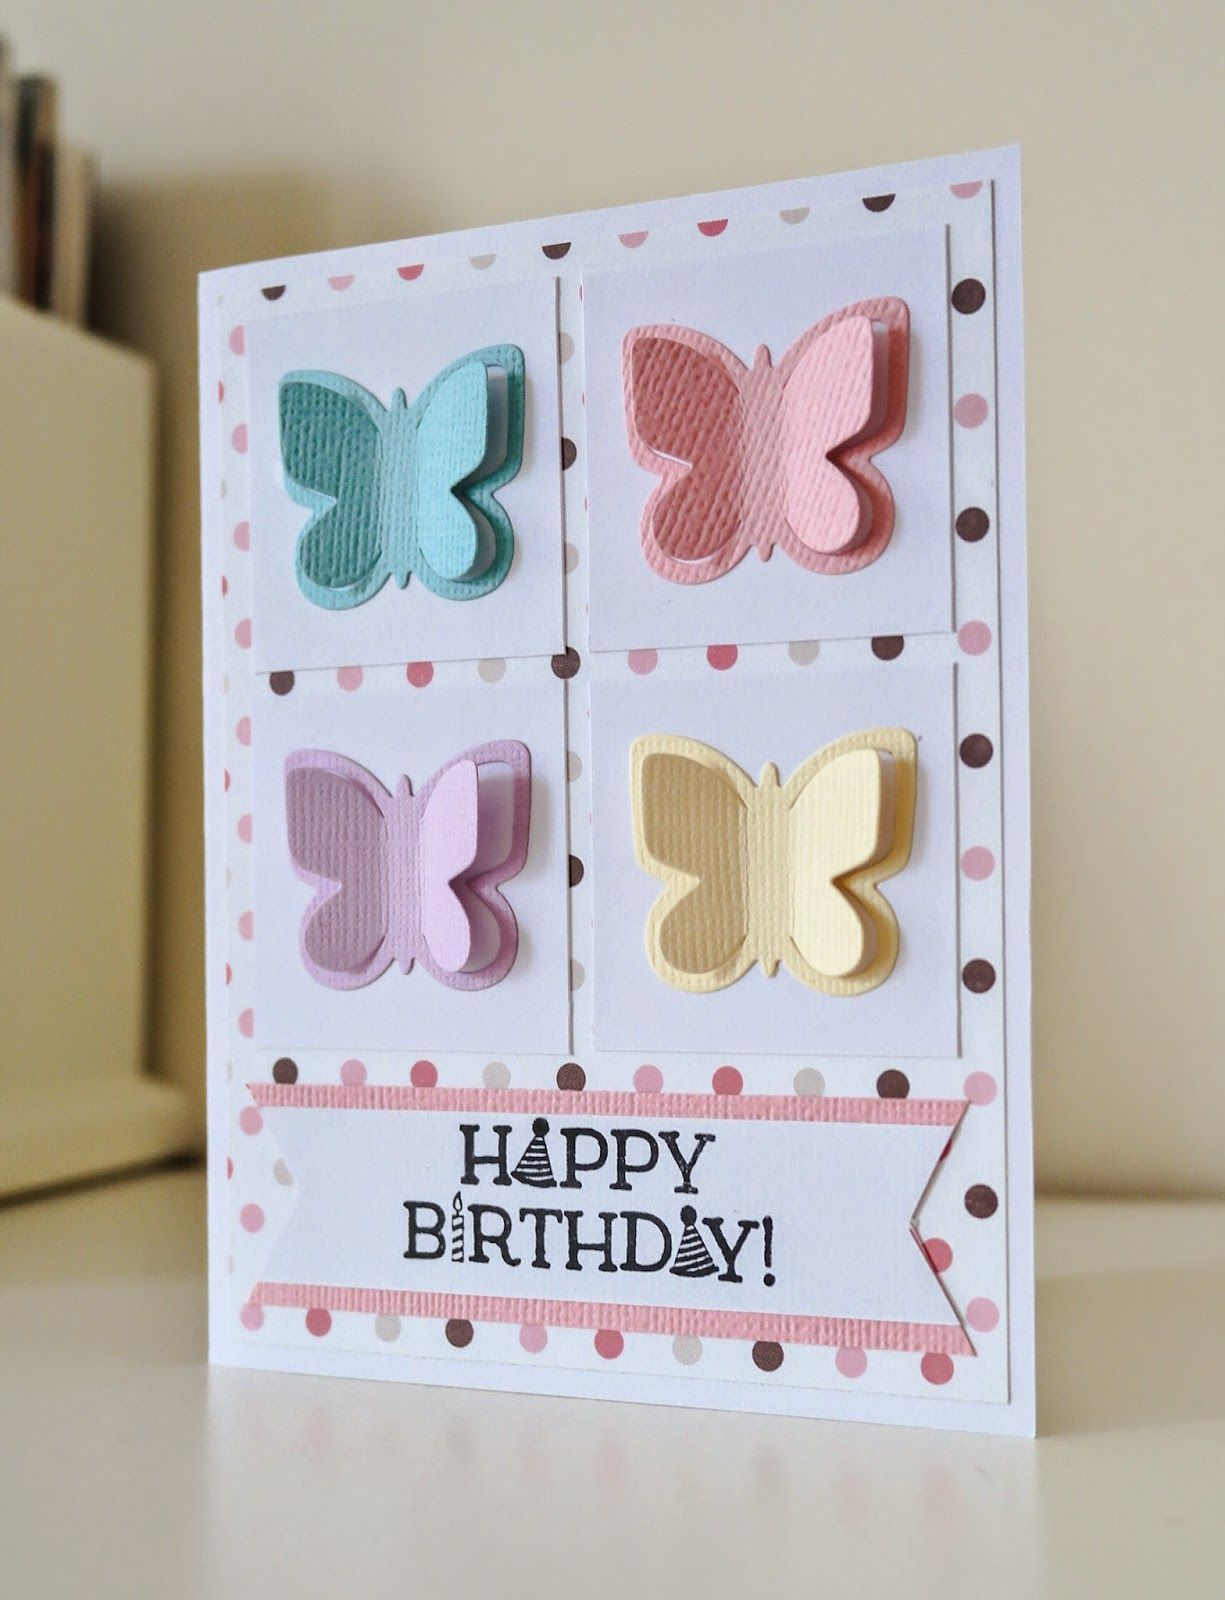 Kimh Recreating Happiness Birthday Butterflies Card For Little Girls Girl Birthday Cards First Birthday Cards Birthday Cards